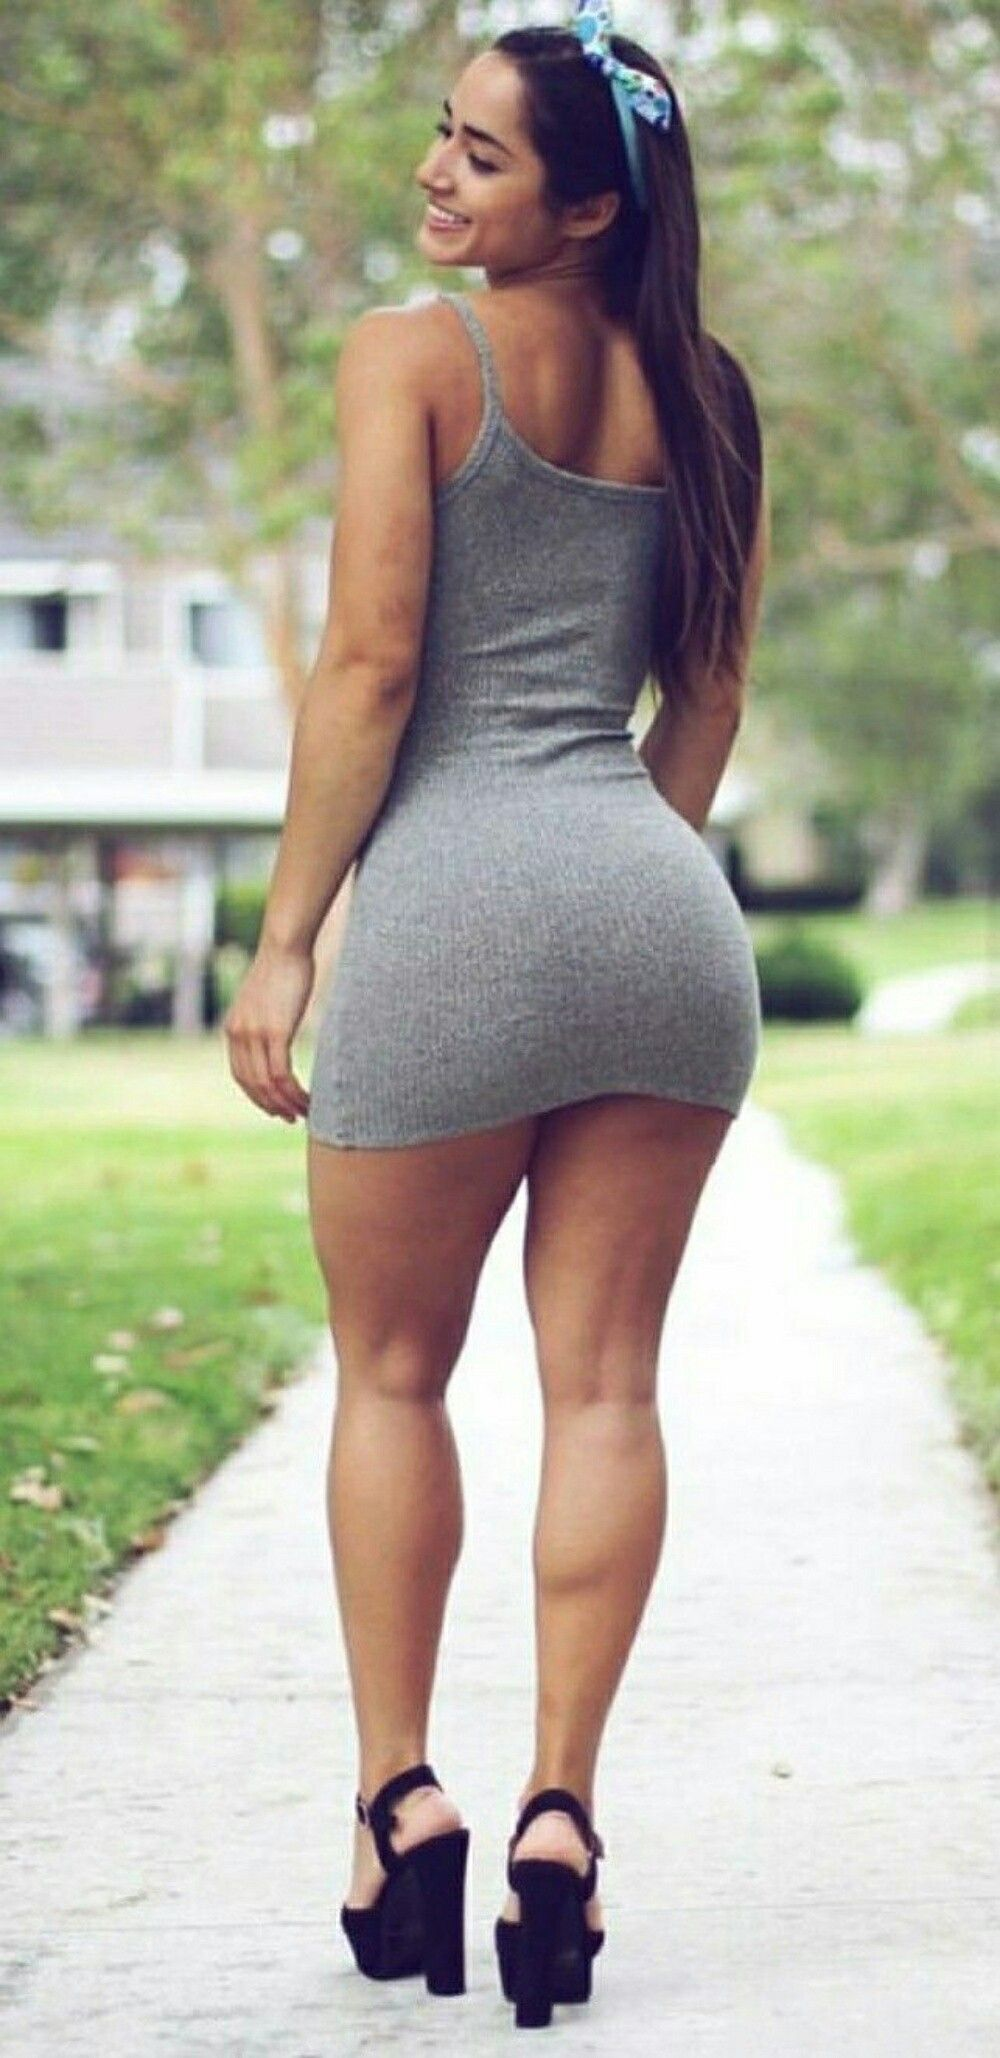 pinИван on best asses | pinterest | curves, curvy and nice